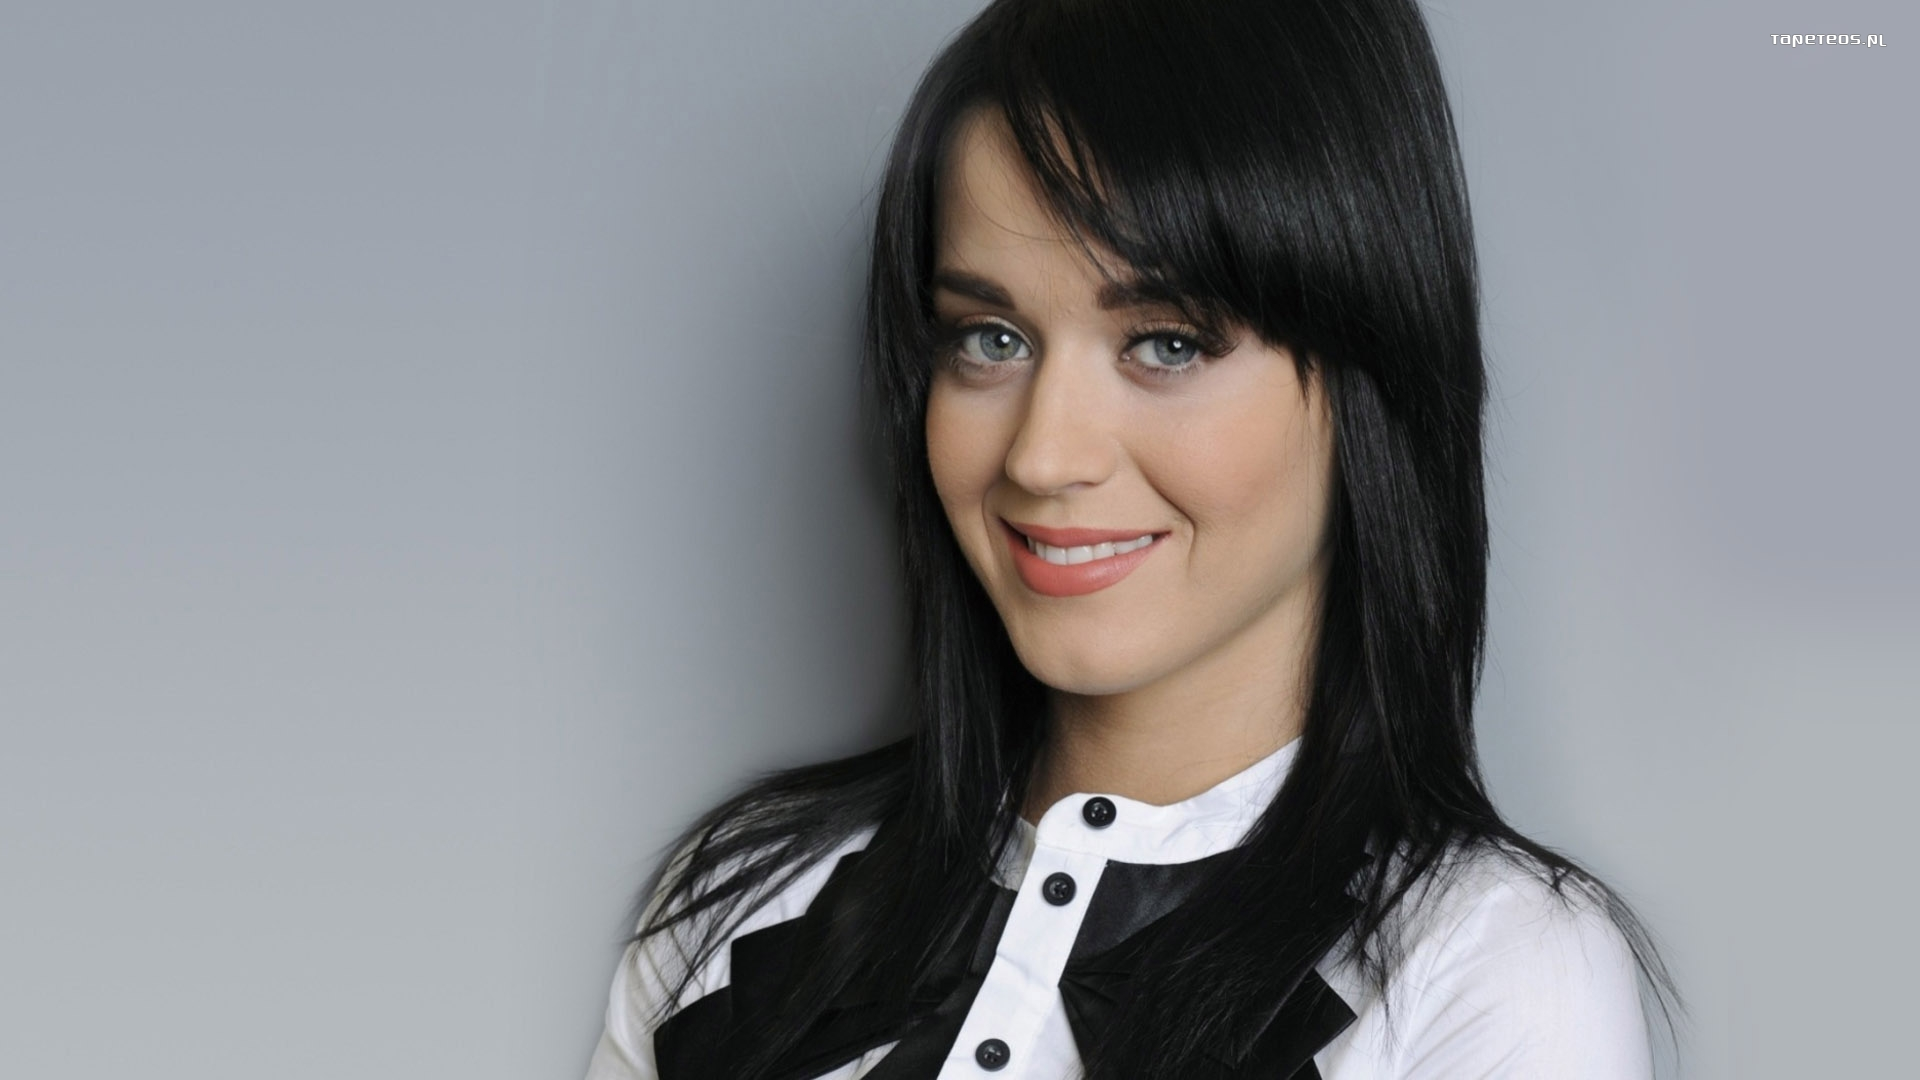 Katy Perry 055